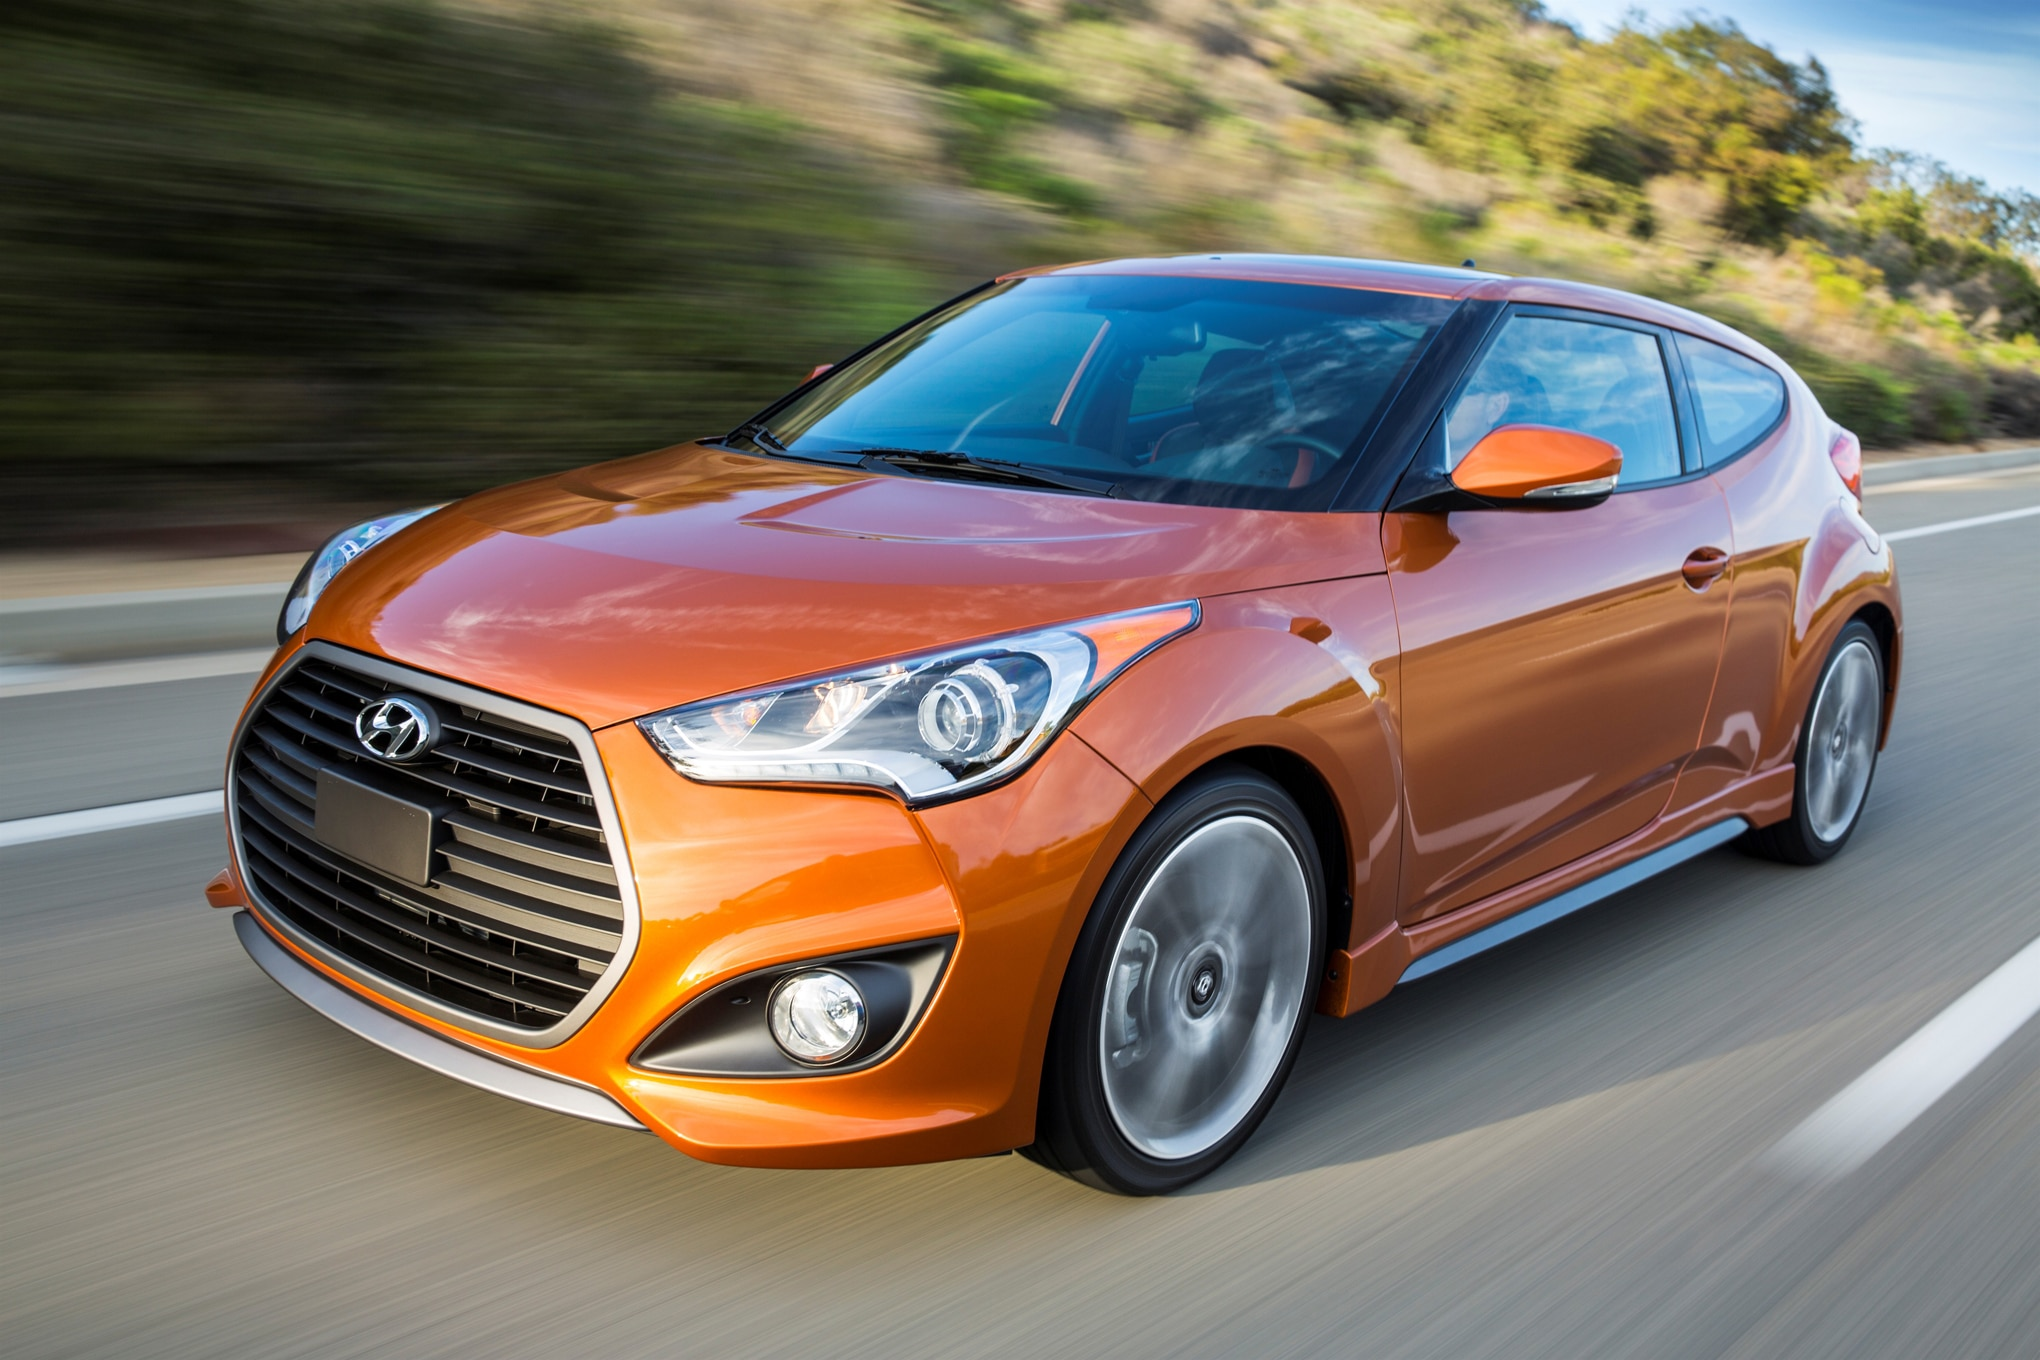 2016 hyundai veloster turbo unveiled in chicago with new 7 speed dct. Black Bedroom Furniture Sets. Home Design Ideas